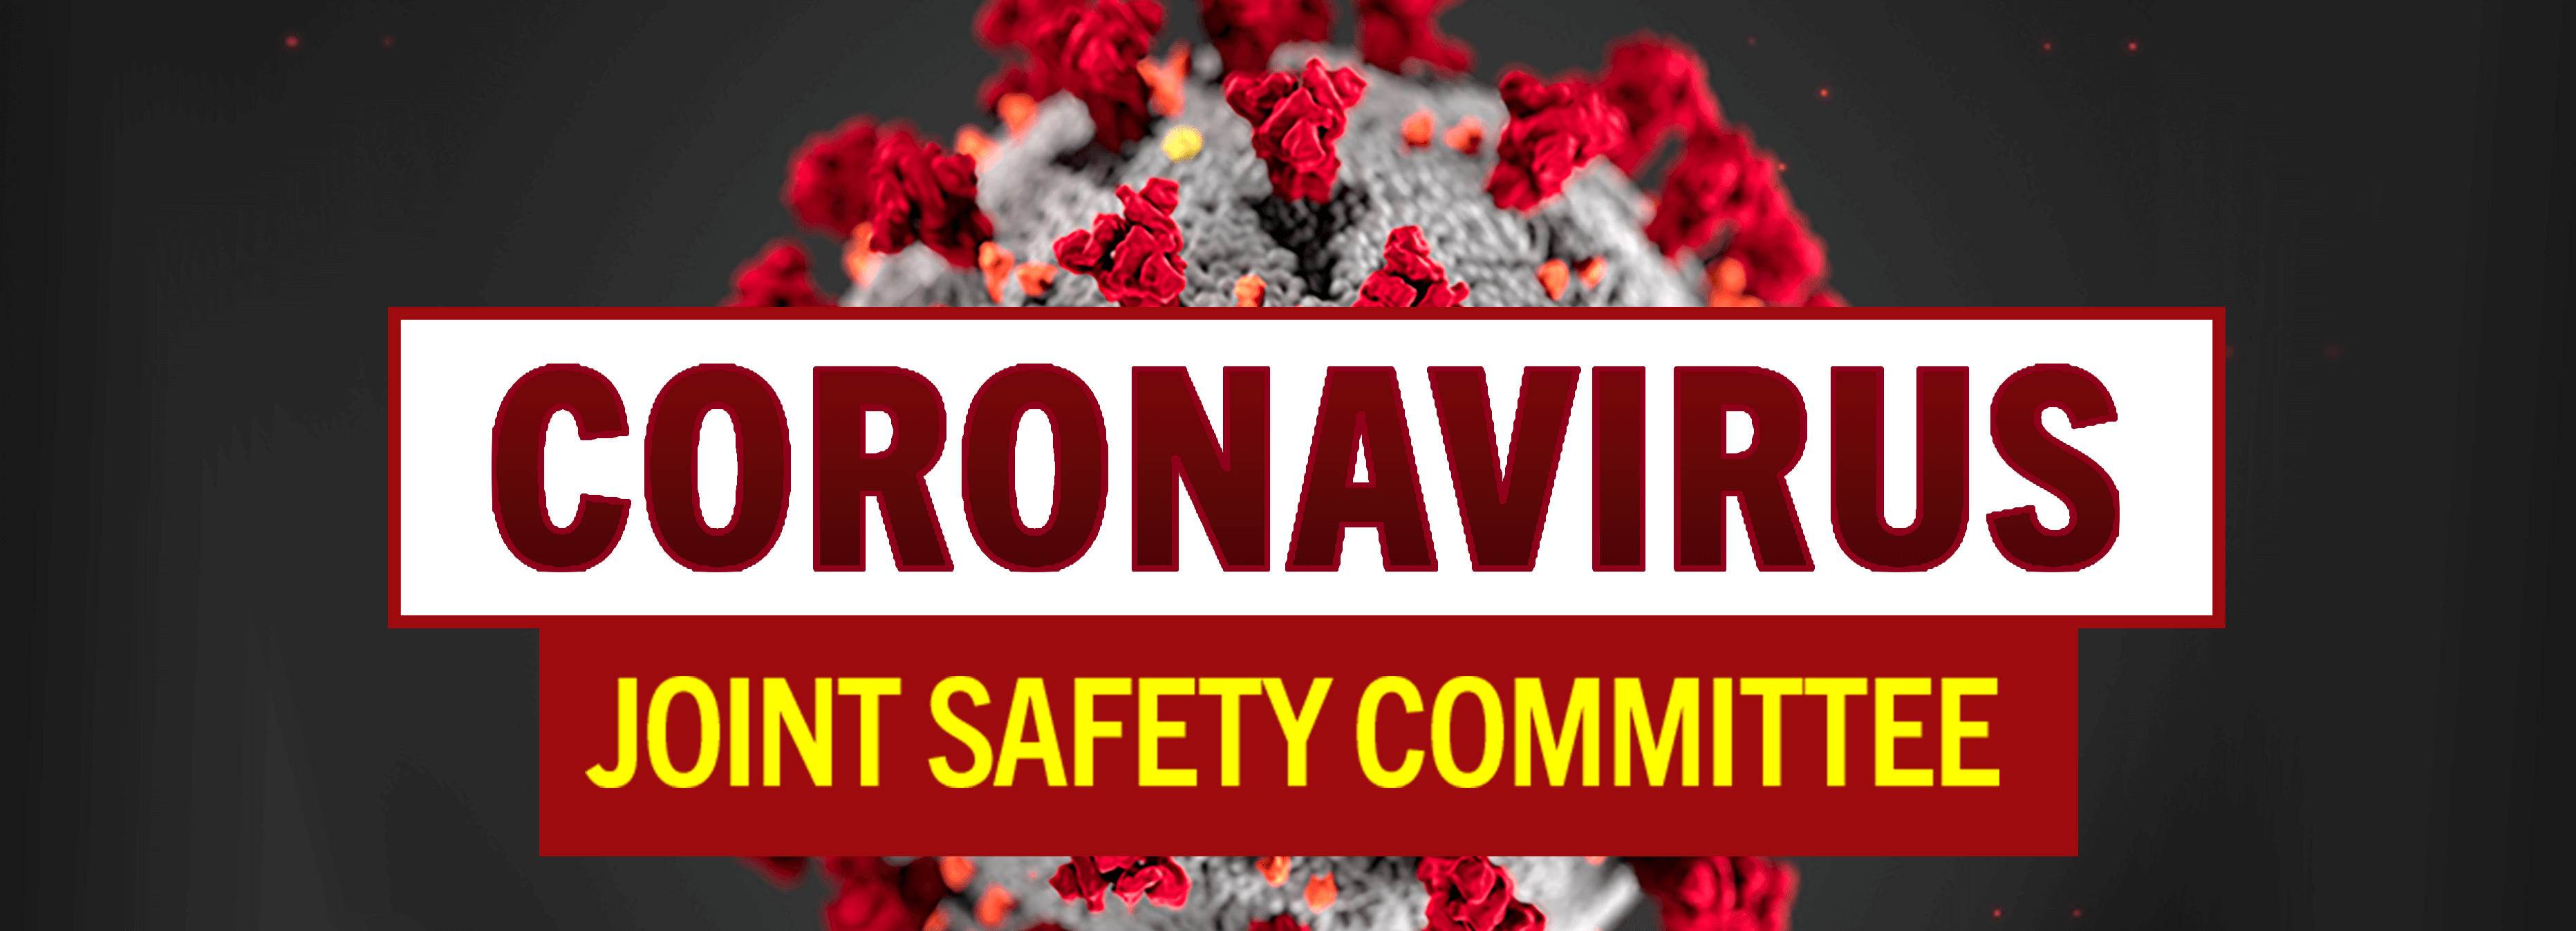 JOINT SAFETY COMMITTEE